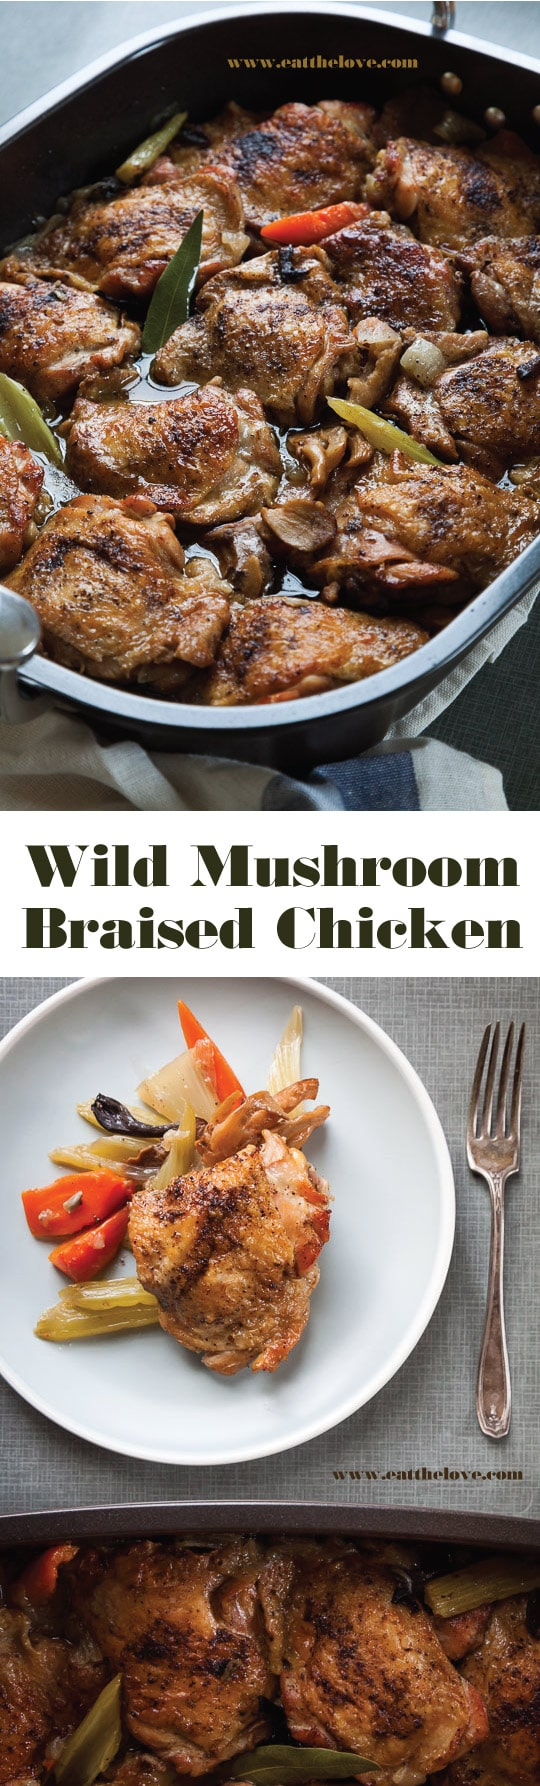 Super easy flavorful Mushroom Braised Chicken recipe! Photo and recipe by Irvin Lin of Eat the Love.